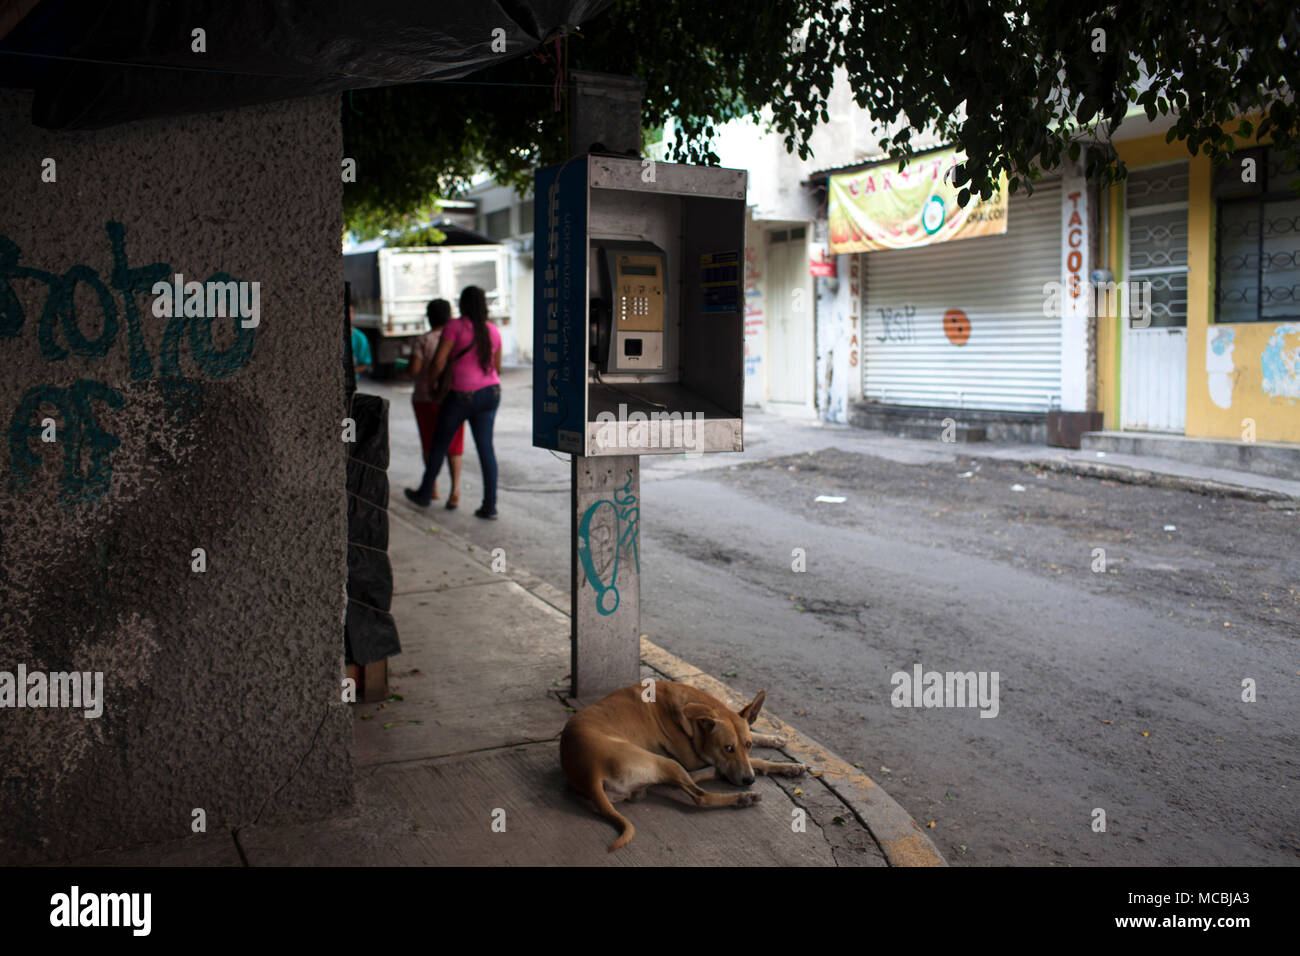 A dog in downtown Chilpancingo, Guerrero, Mexico on Saturday, July 25, 2015. The State of Guerrero has experienced a lot of violence, including the disappearance of 43 students last fall. - Stock Image